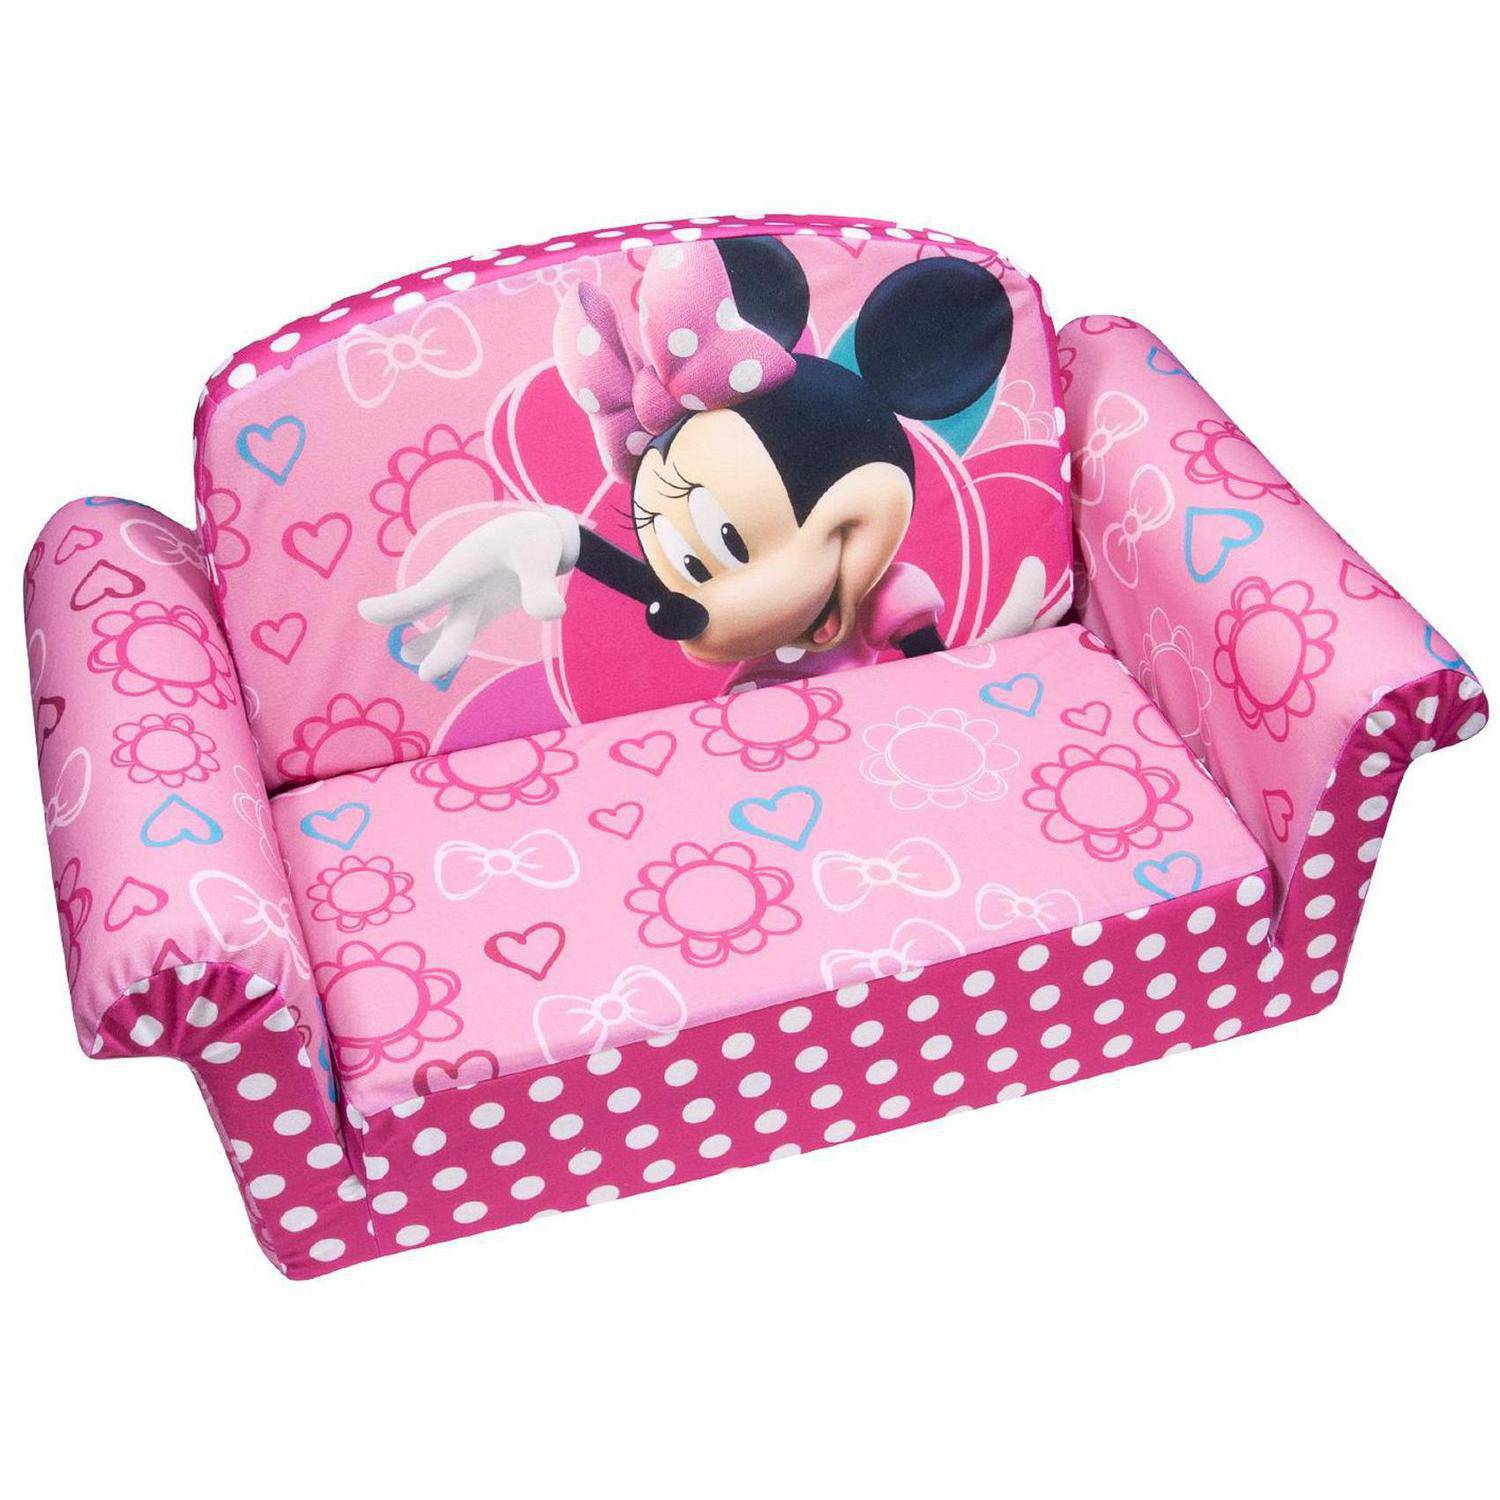 Marshmallow 2-in-1 Flip Open Sofa, Disney Minnie's Bow-tique